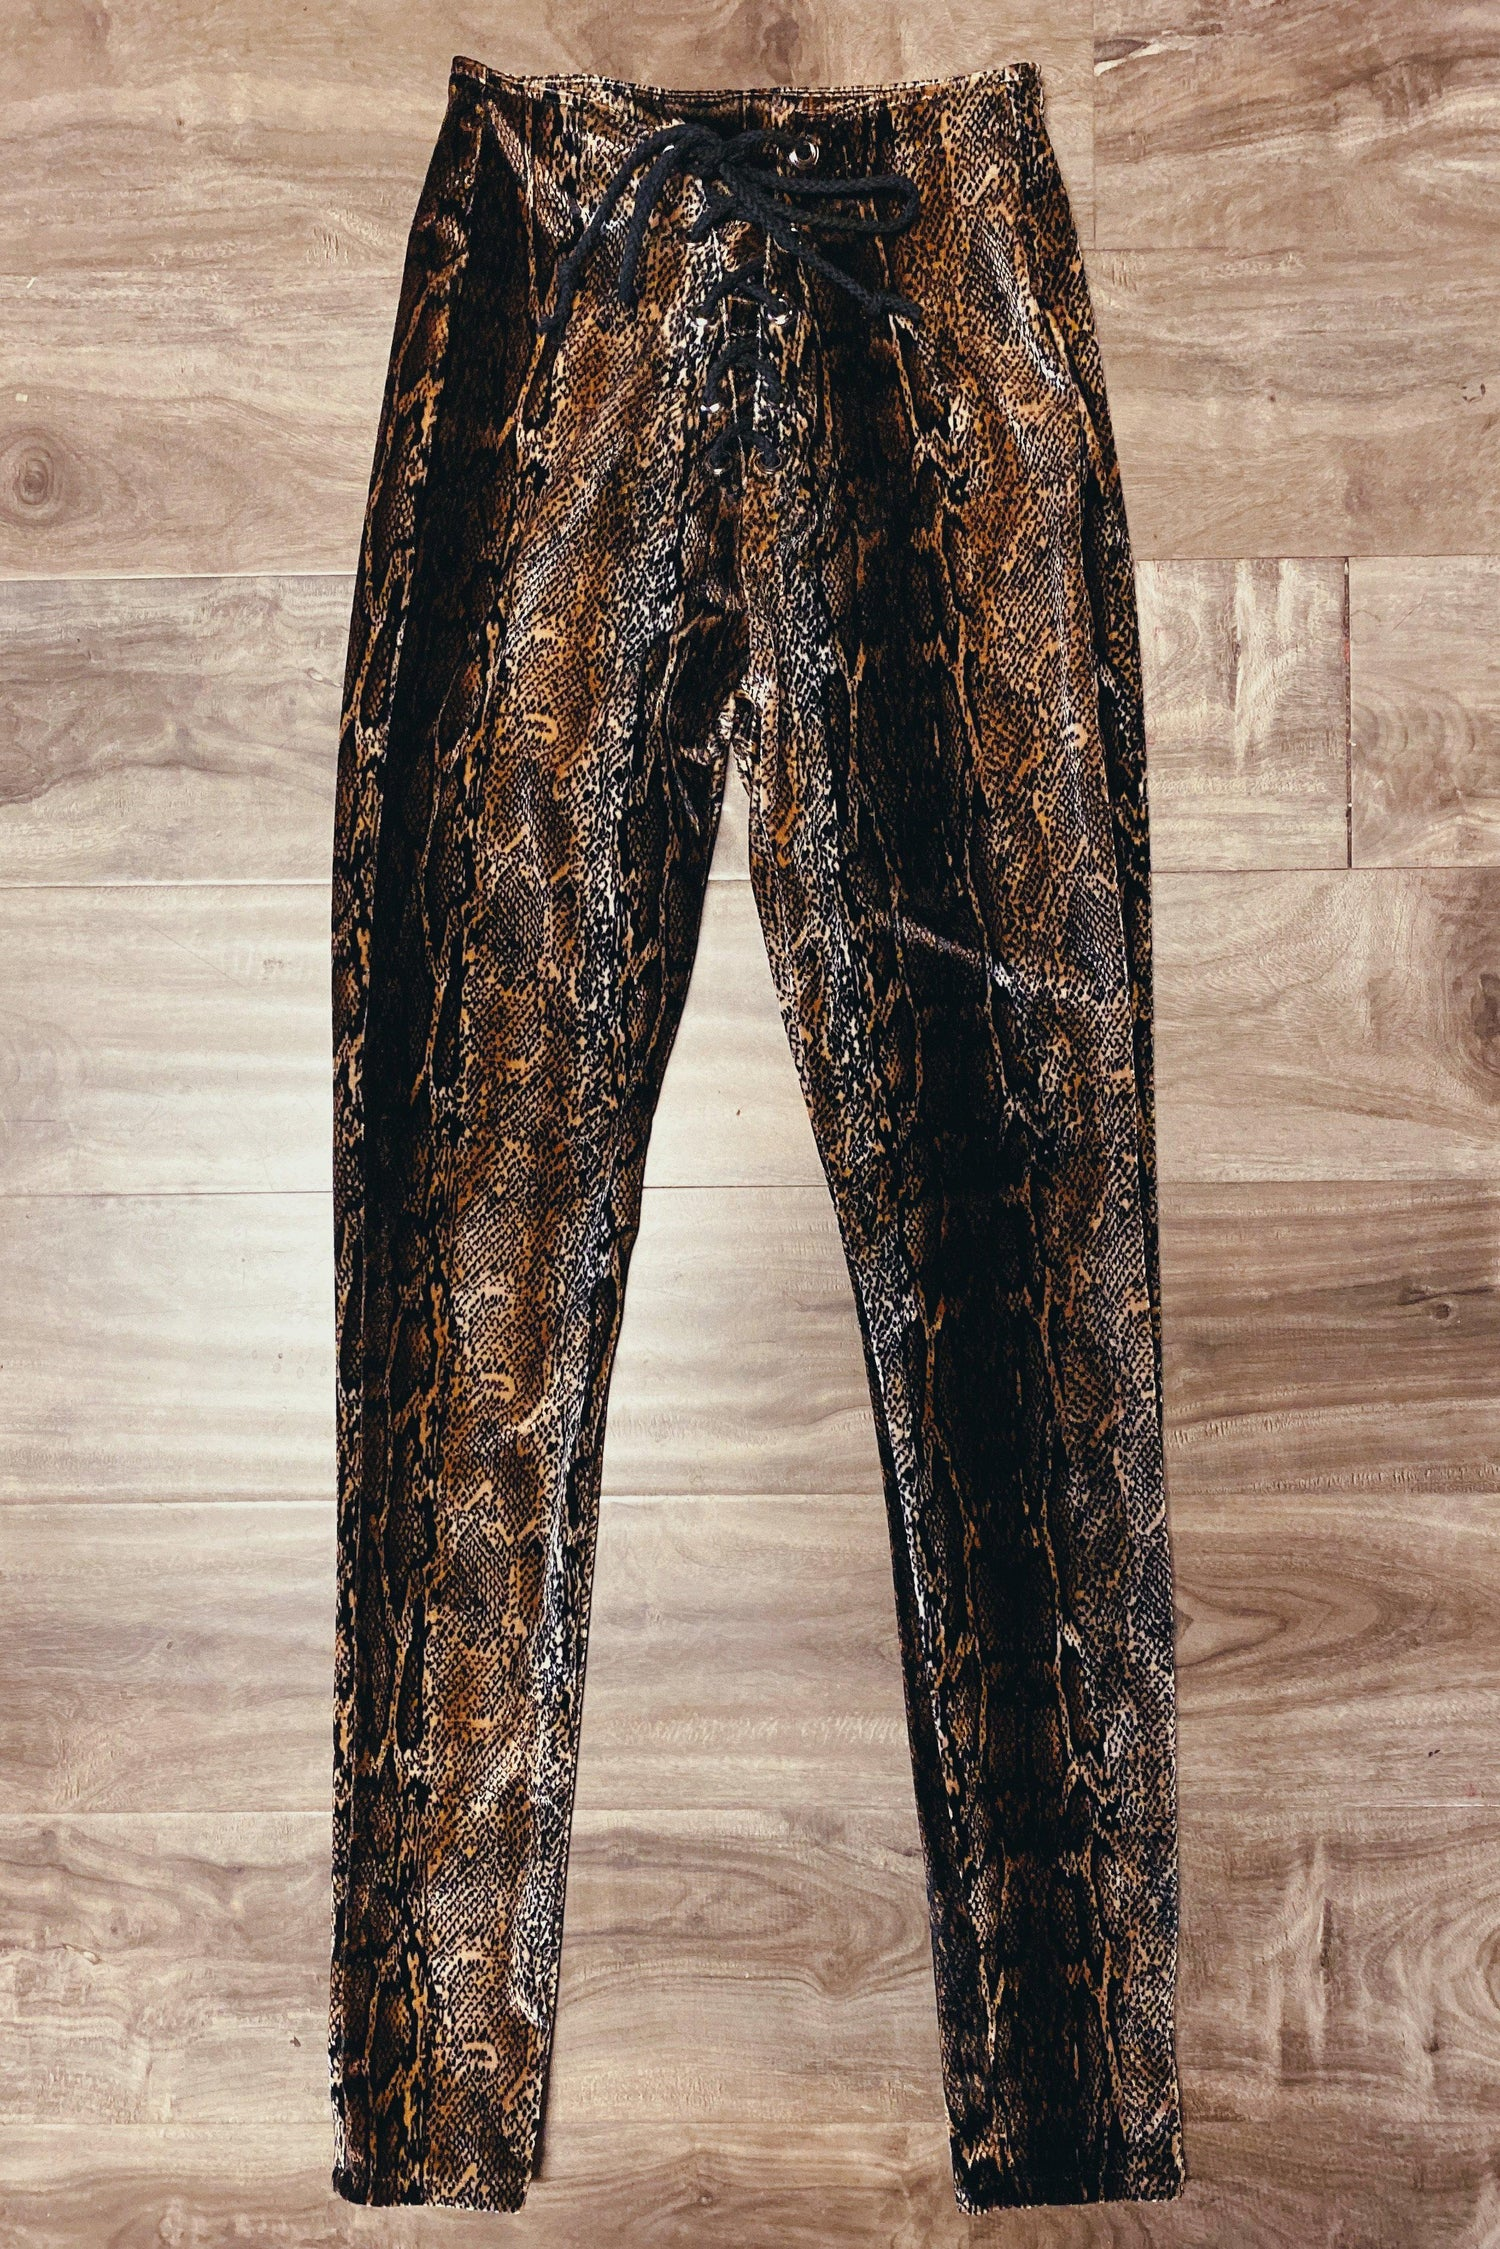 IN STOCK Velvet Grommet Pants Size XS・Grey Python